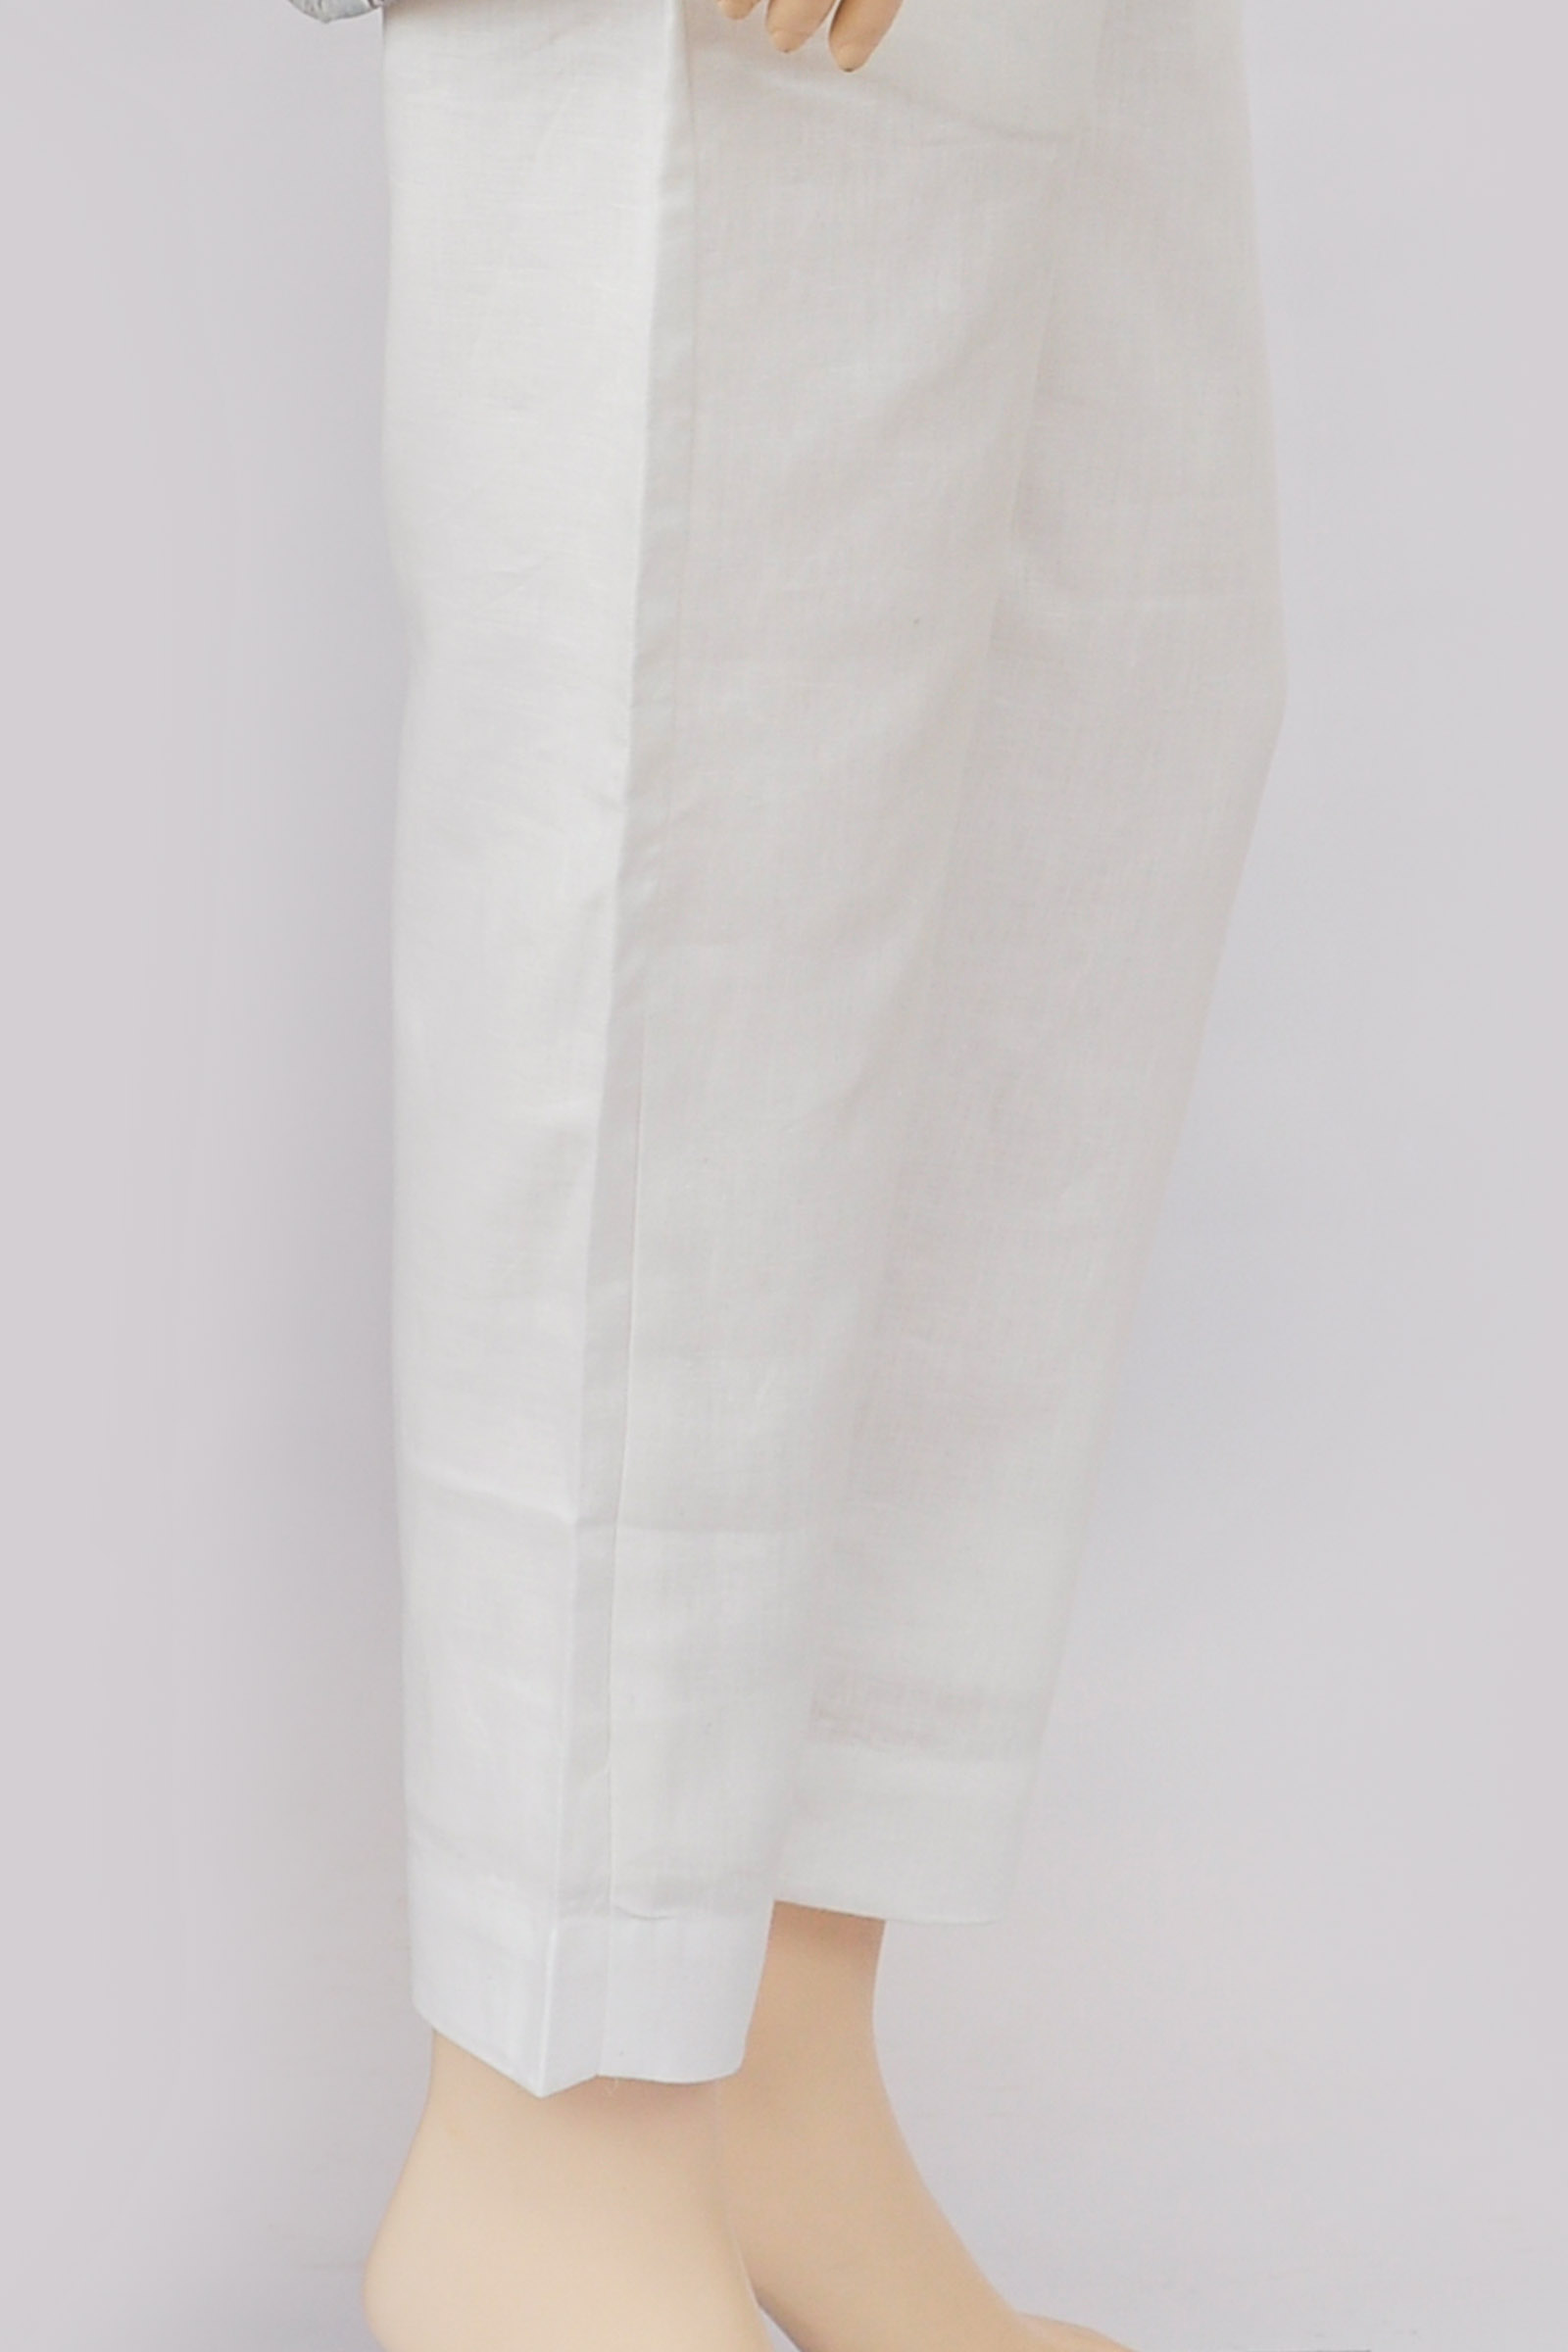 White Linen Cotton Pant